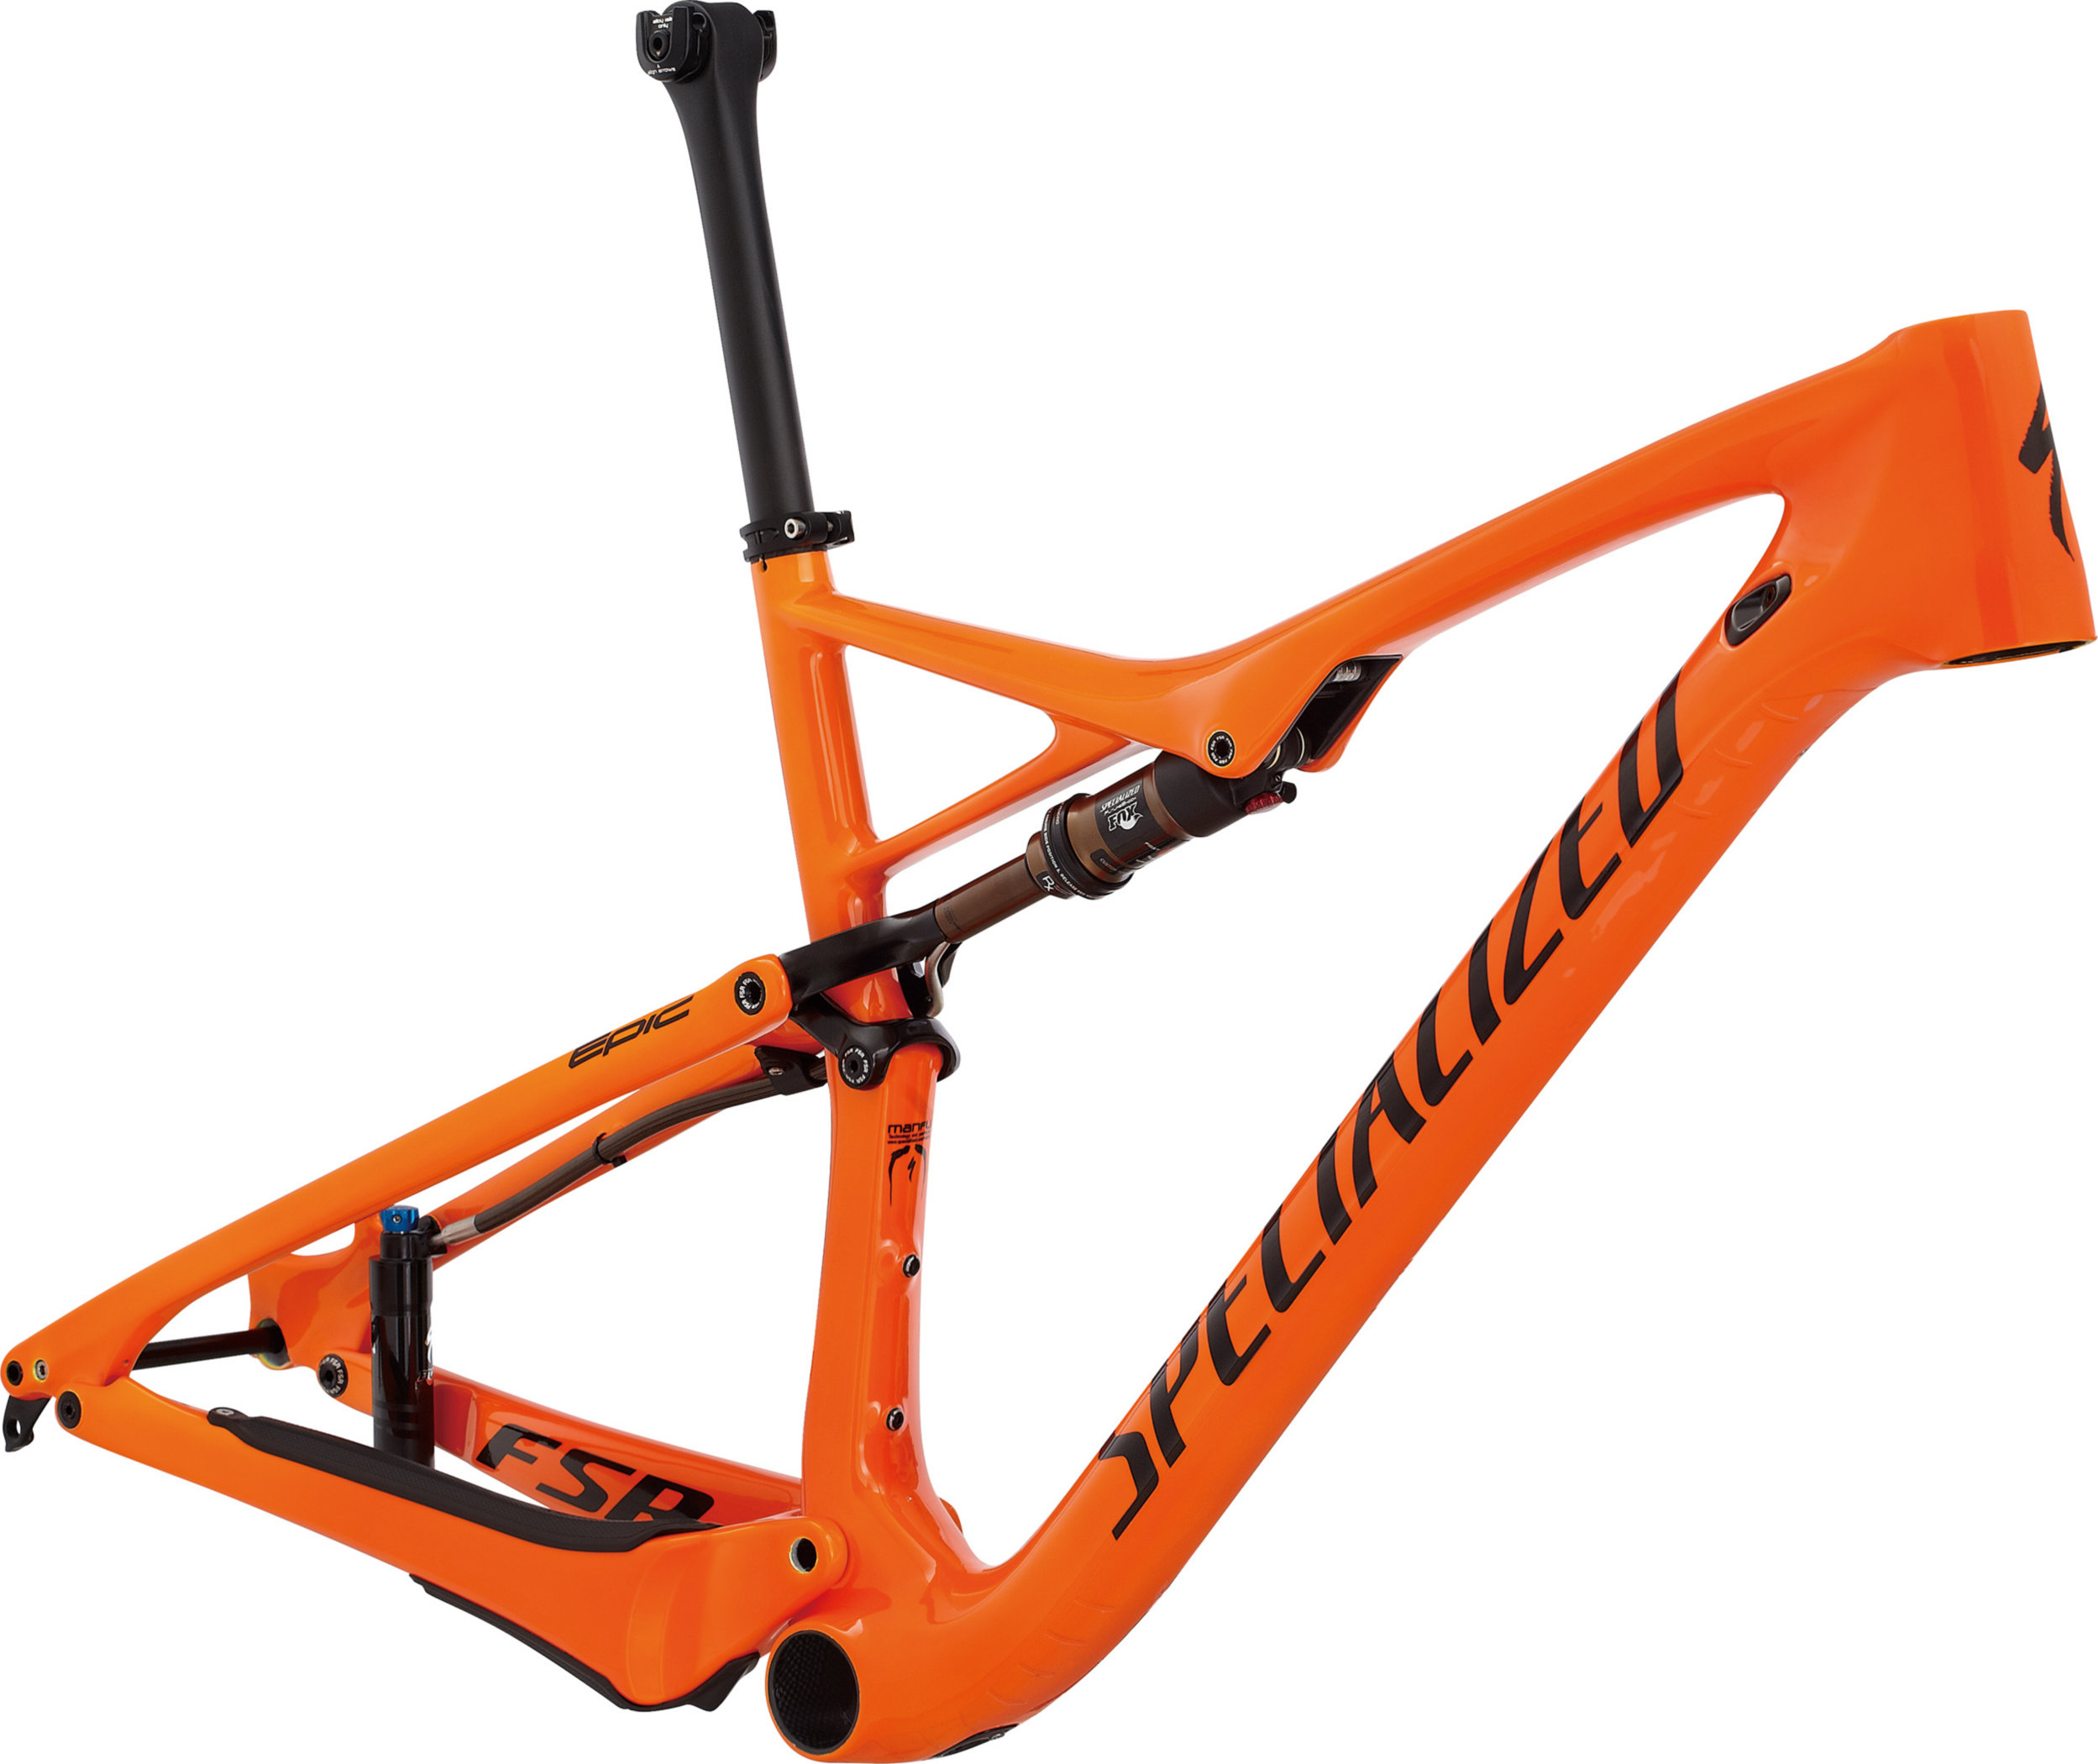 SPECIALIZED SW EPIC FSR CARBON WC 29 FRM TORCH MMORG L - SPECIALIZED SW EPIC FSR CARBON WC 29 FRM TORCH MMORG L